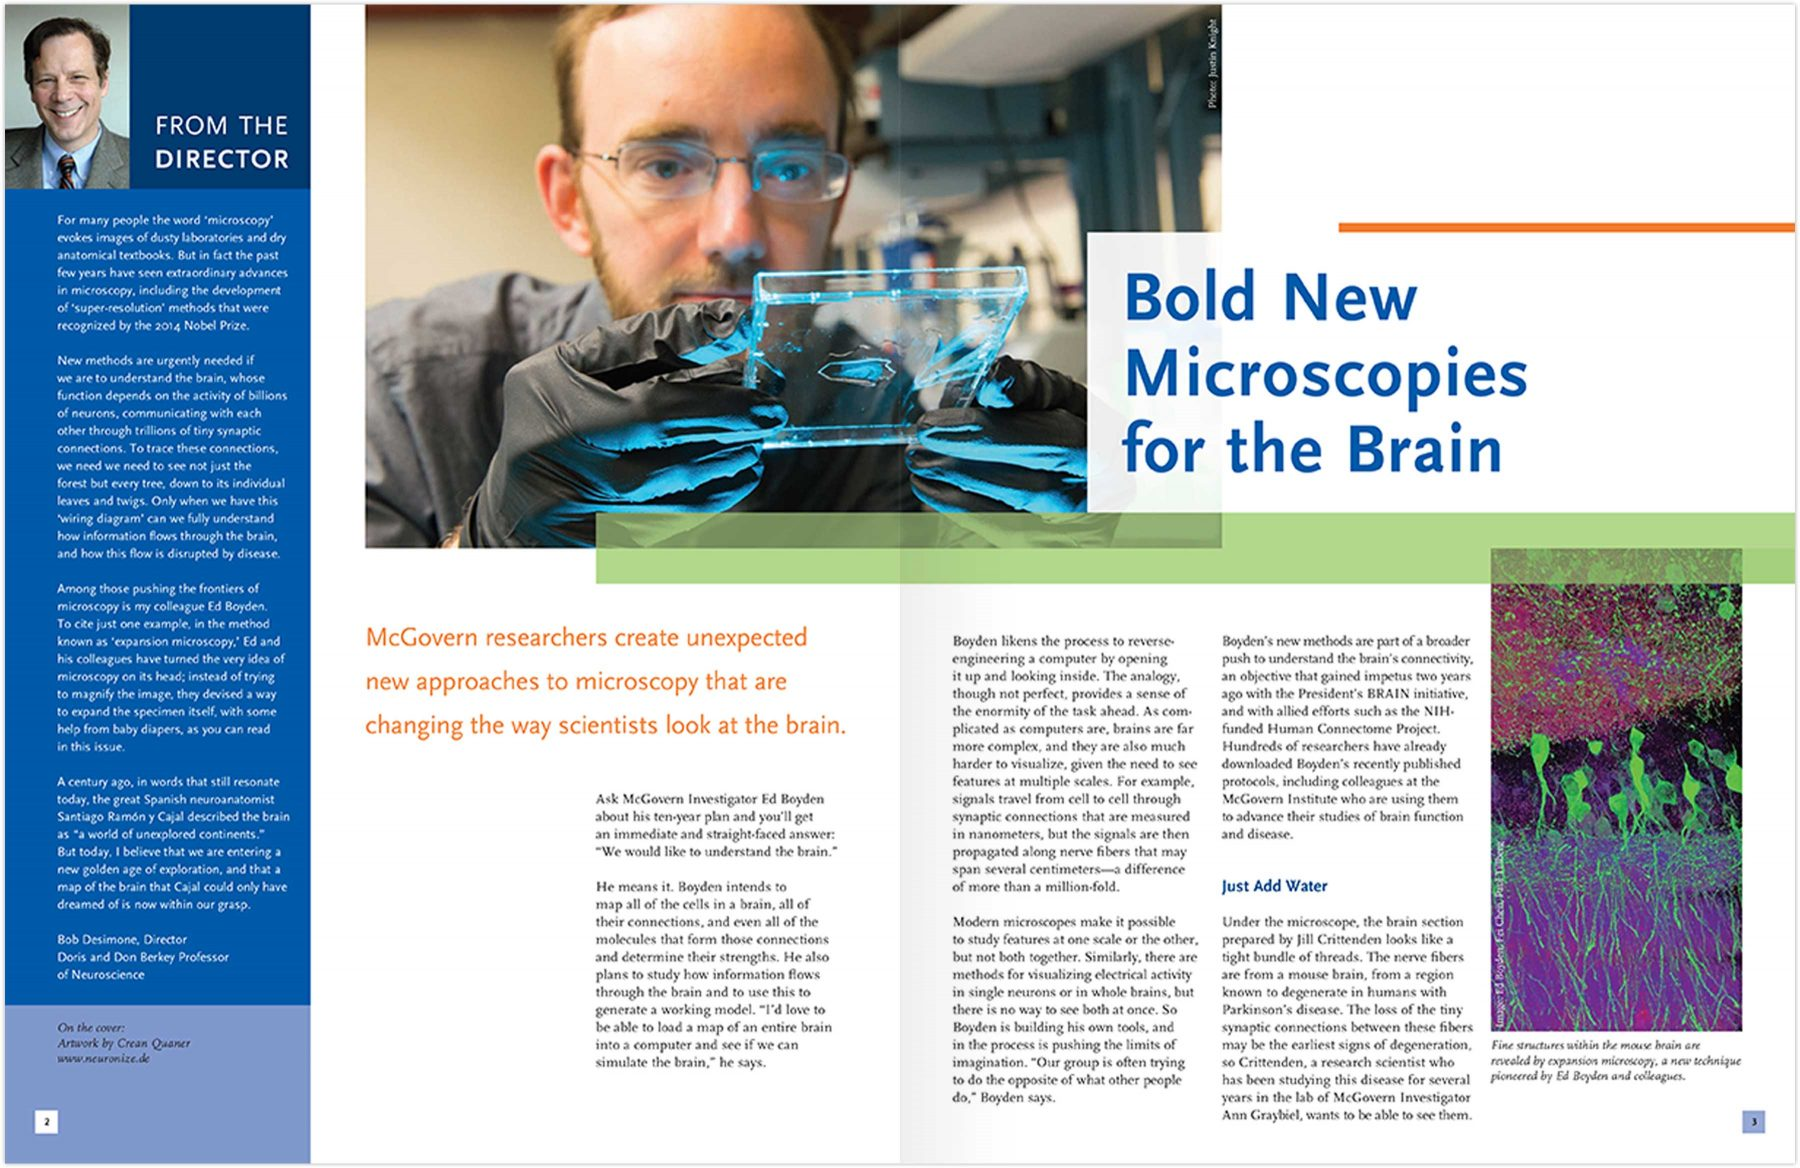 Newsletter: Bold New Microscopies for the Brain